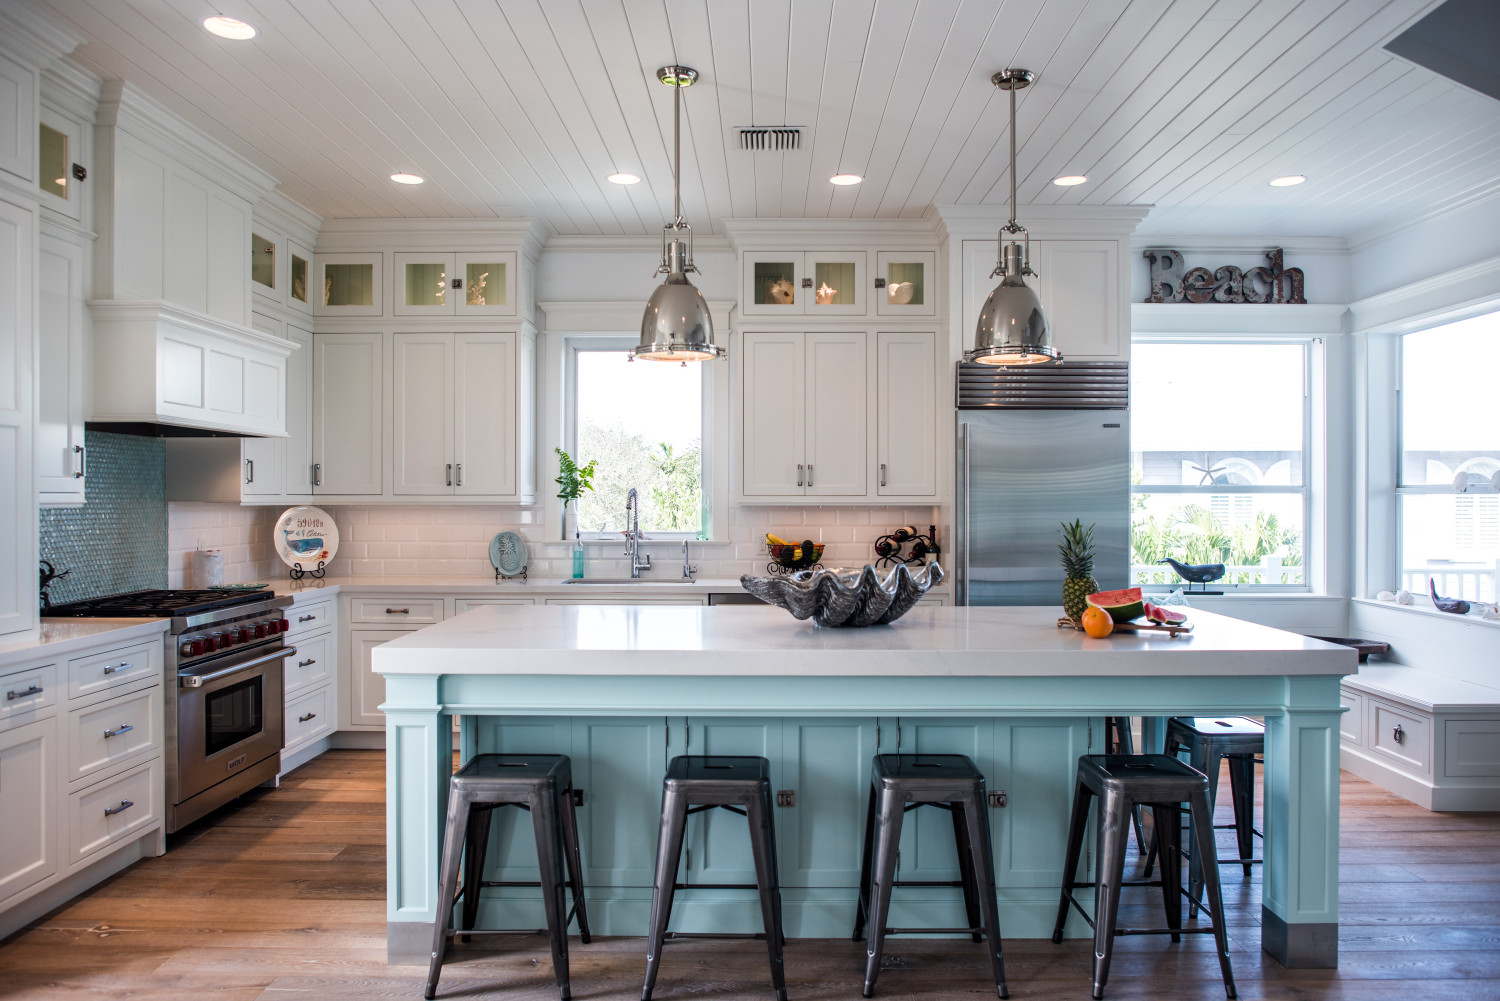 Intracoastal beach home with large kitchen island with Kitchen design home visit